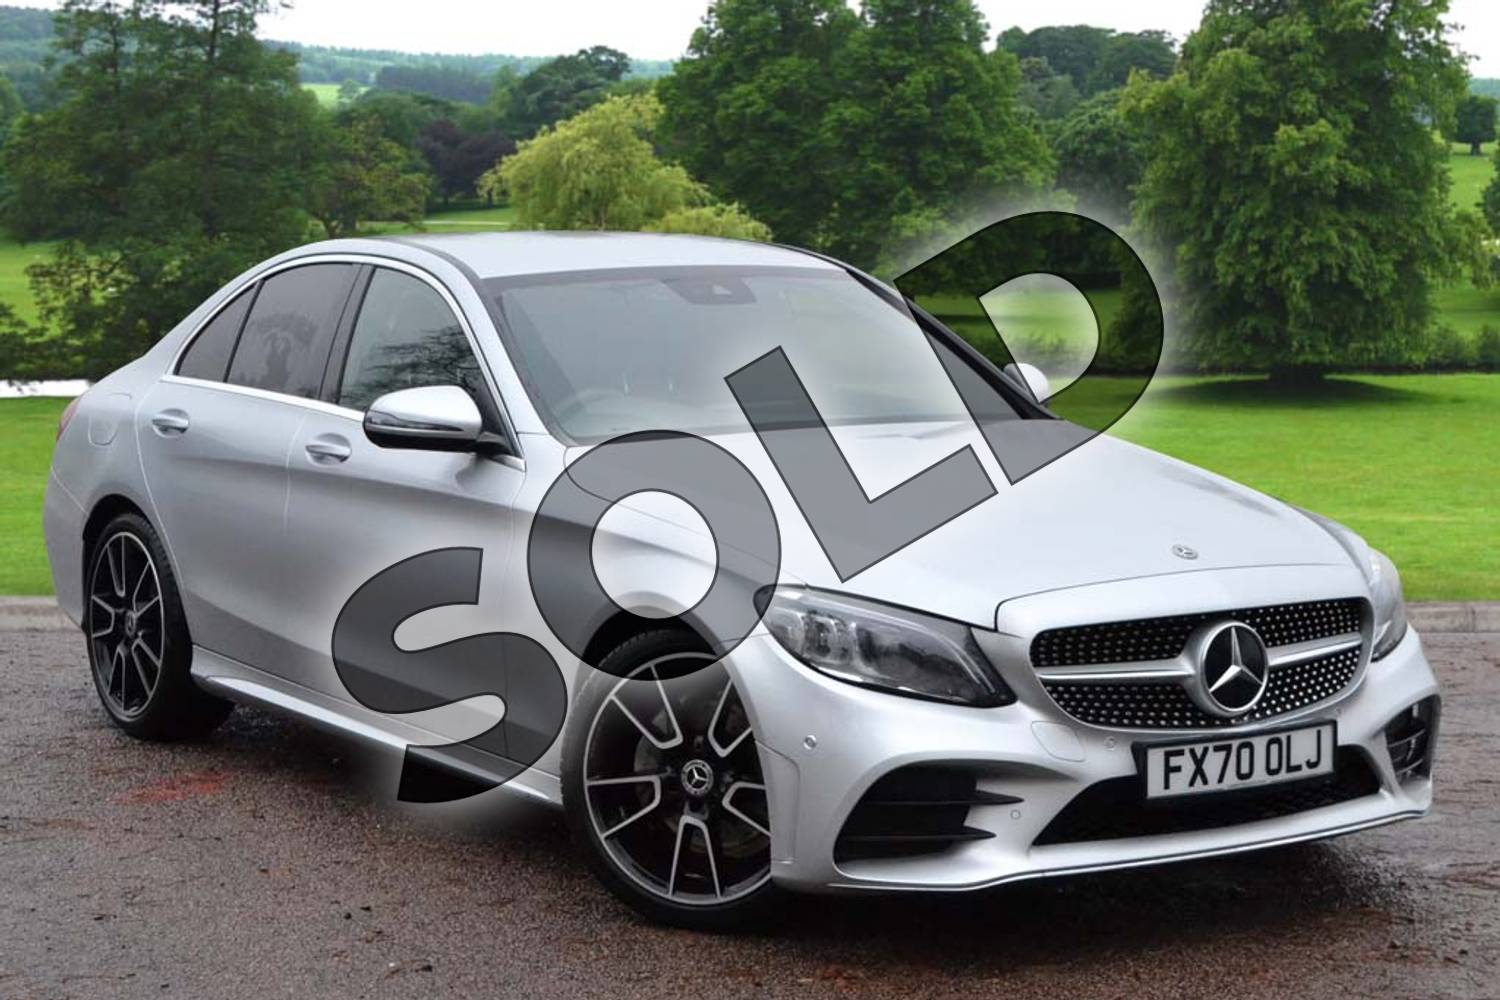 2020 Mercedes-Benz C Class Diesel Saloon C220d AMG Line Edition 4dr 9G-Tronic in iridium silver metallic at Mercedes-Benz of Grimsby